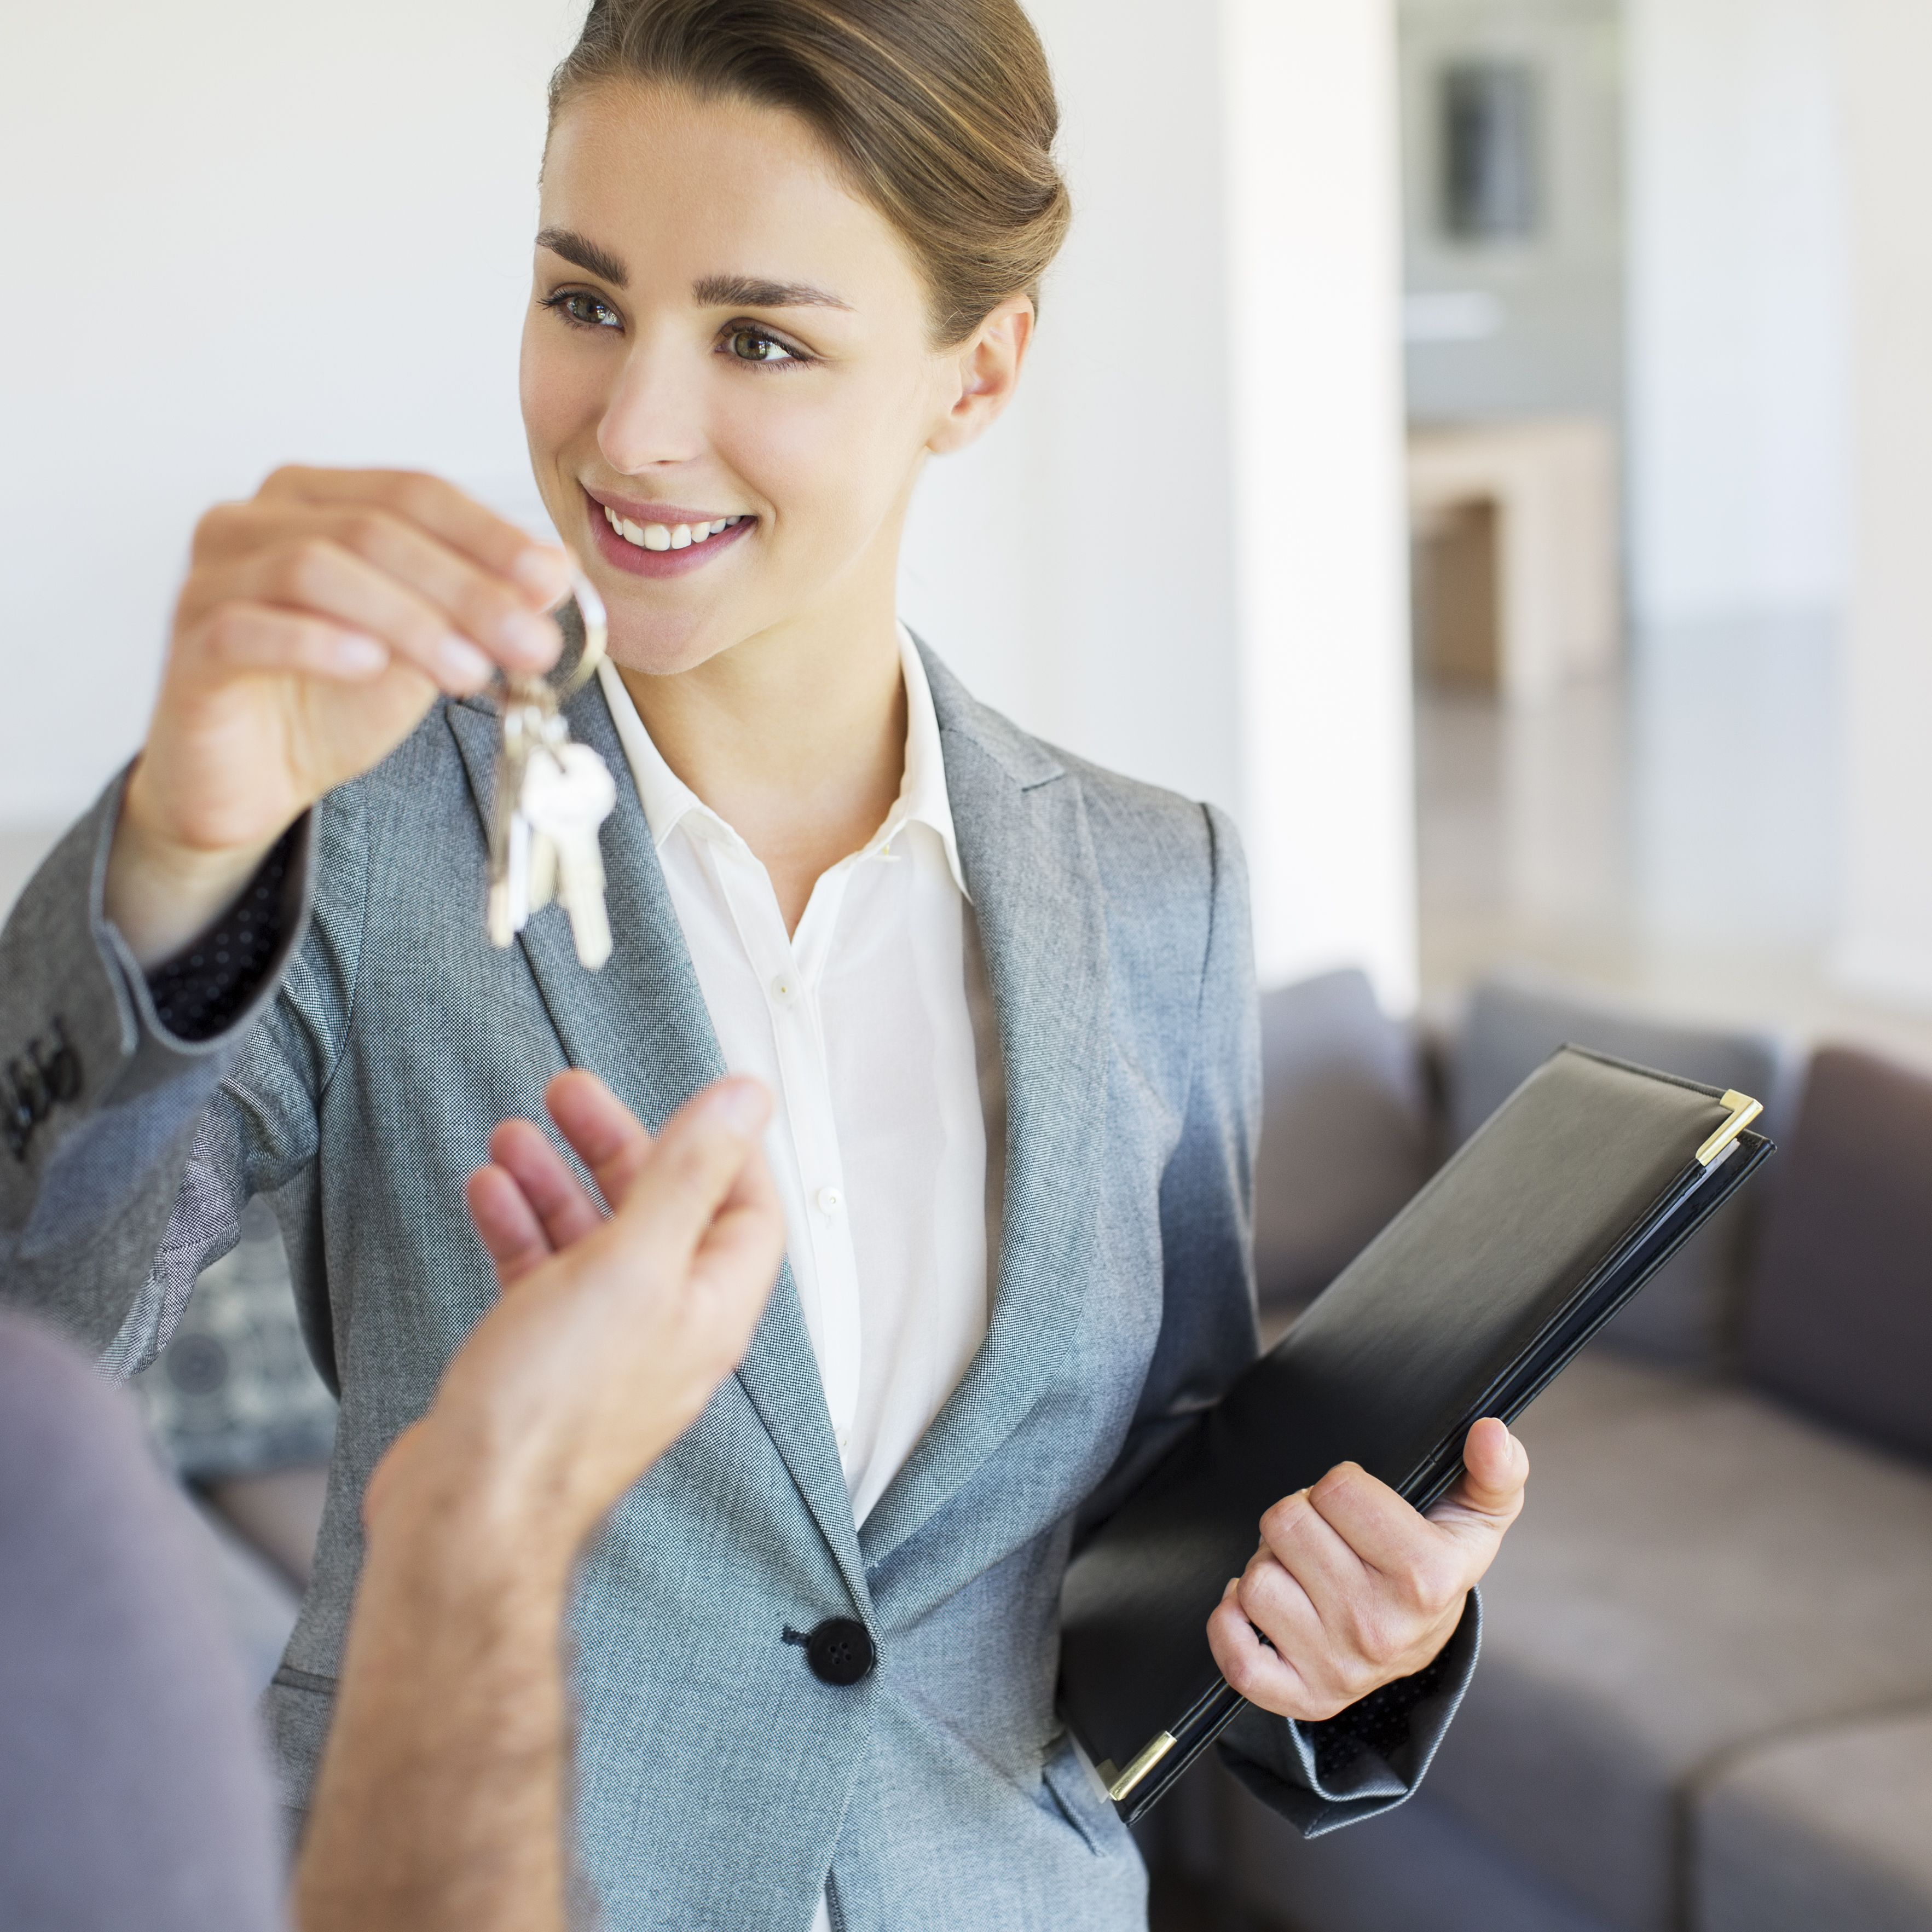 Things a Home Seller Should Never Say to a Buyer